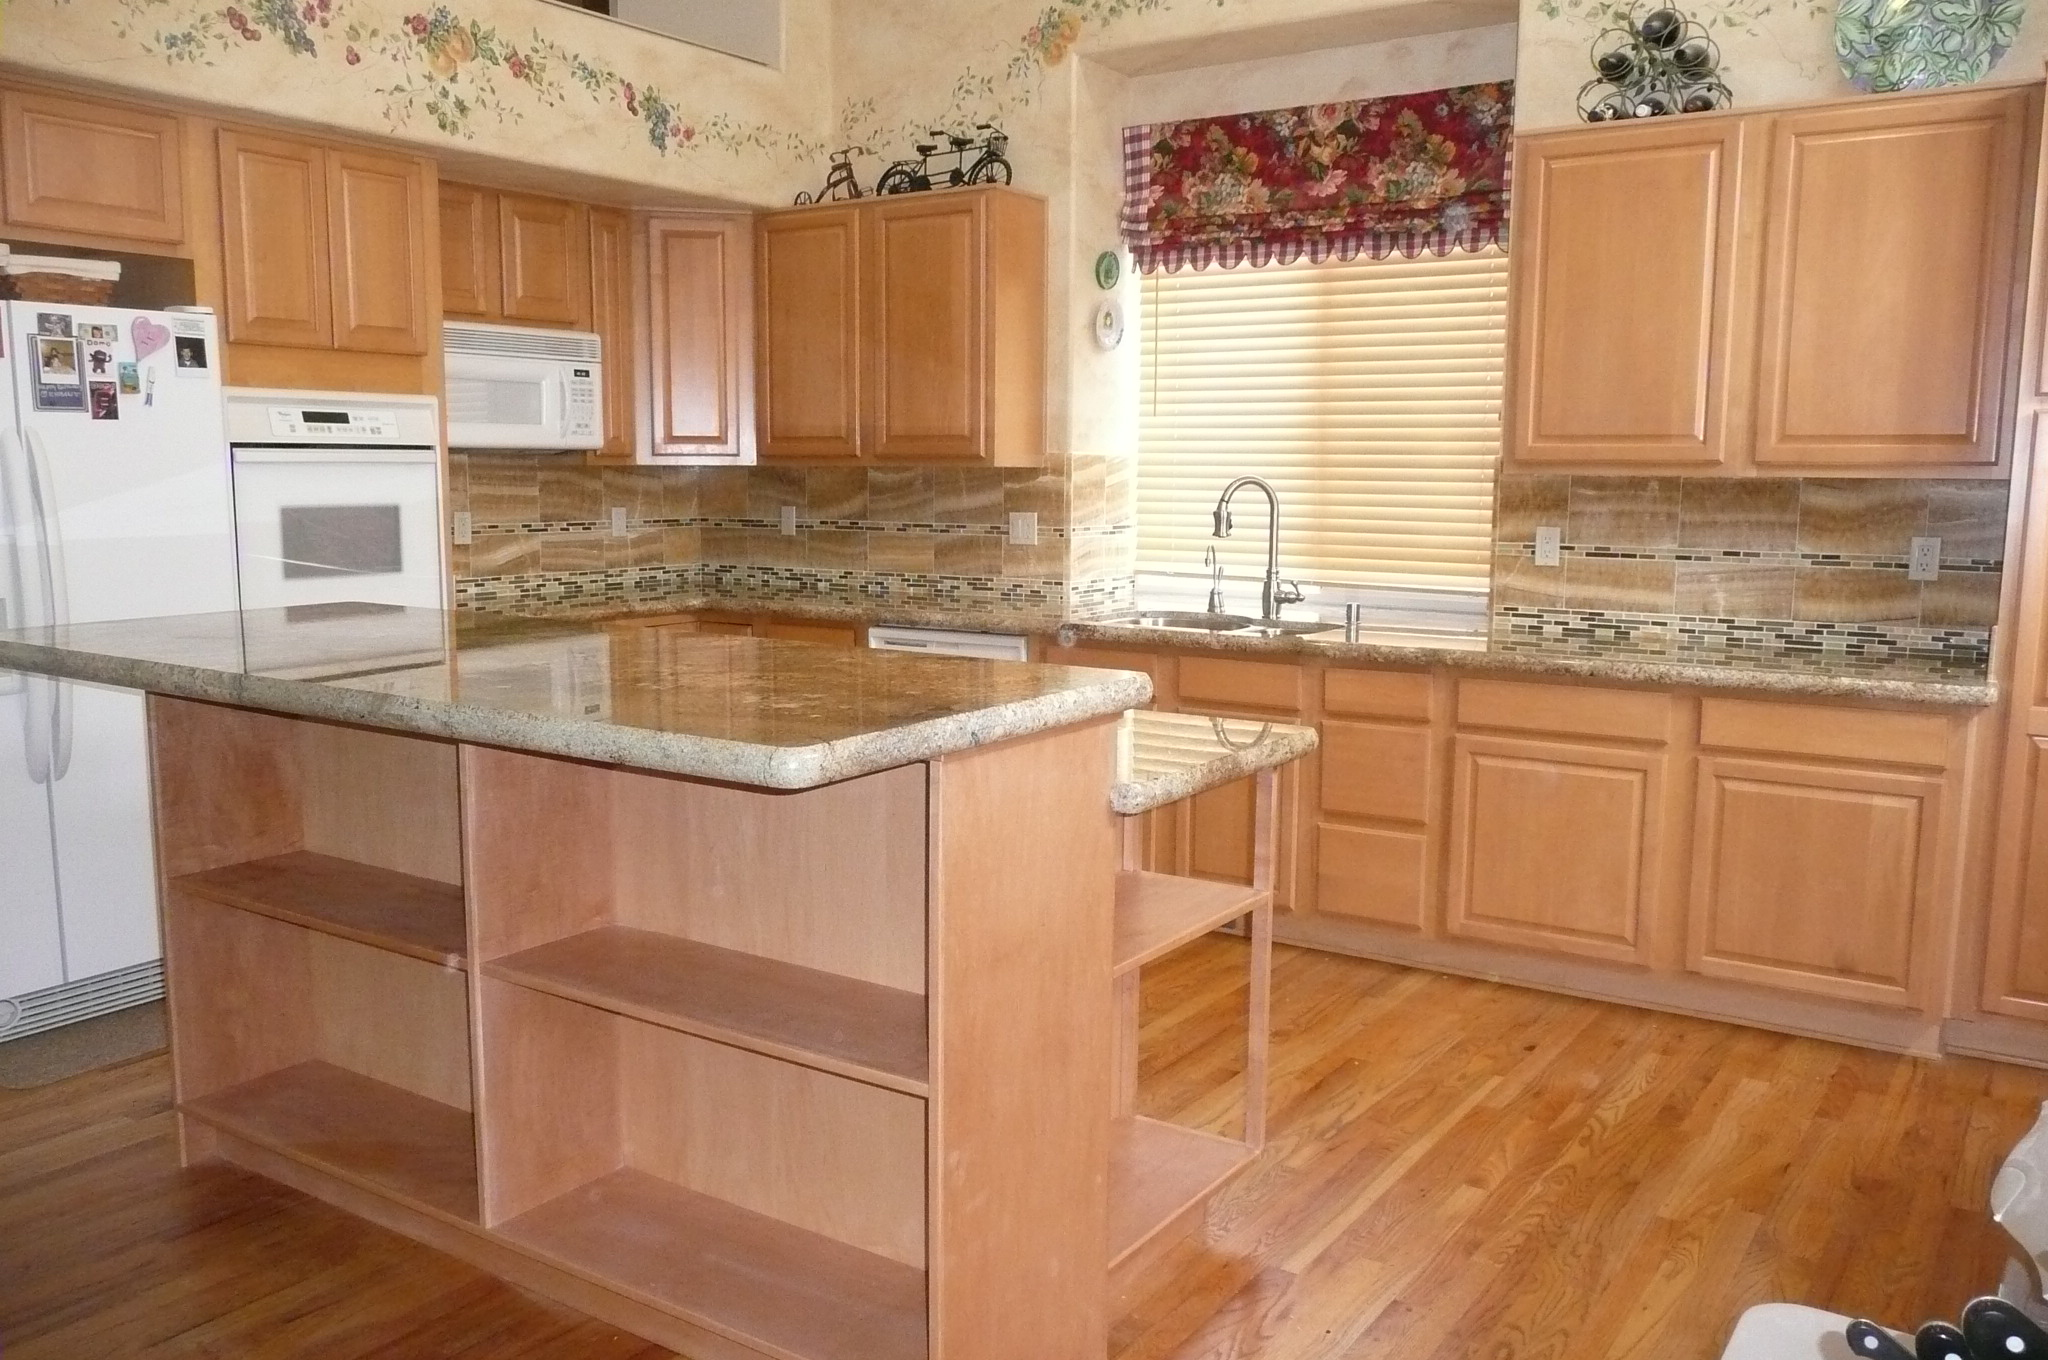 7 things to consider before refinishing your kitchen cabinets - Kitchen Cabinets Frames